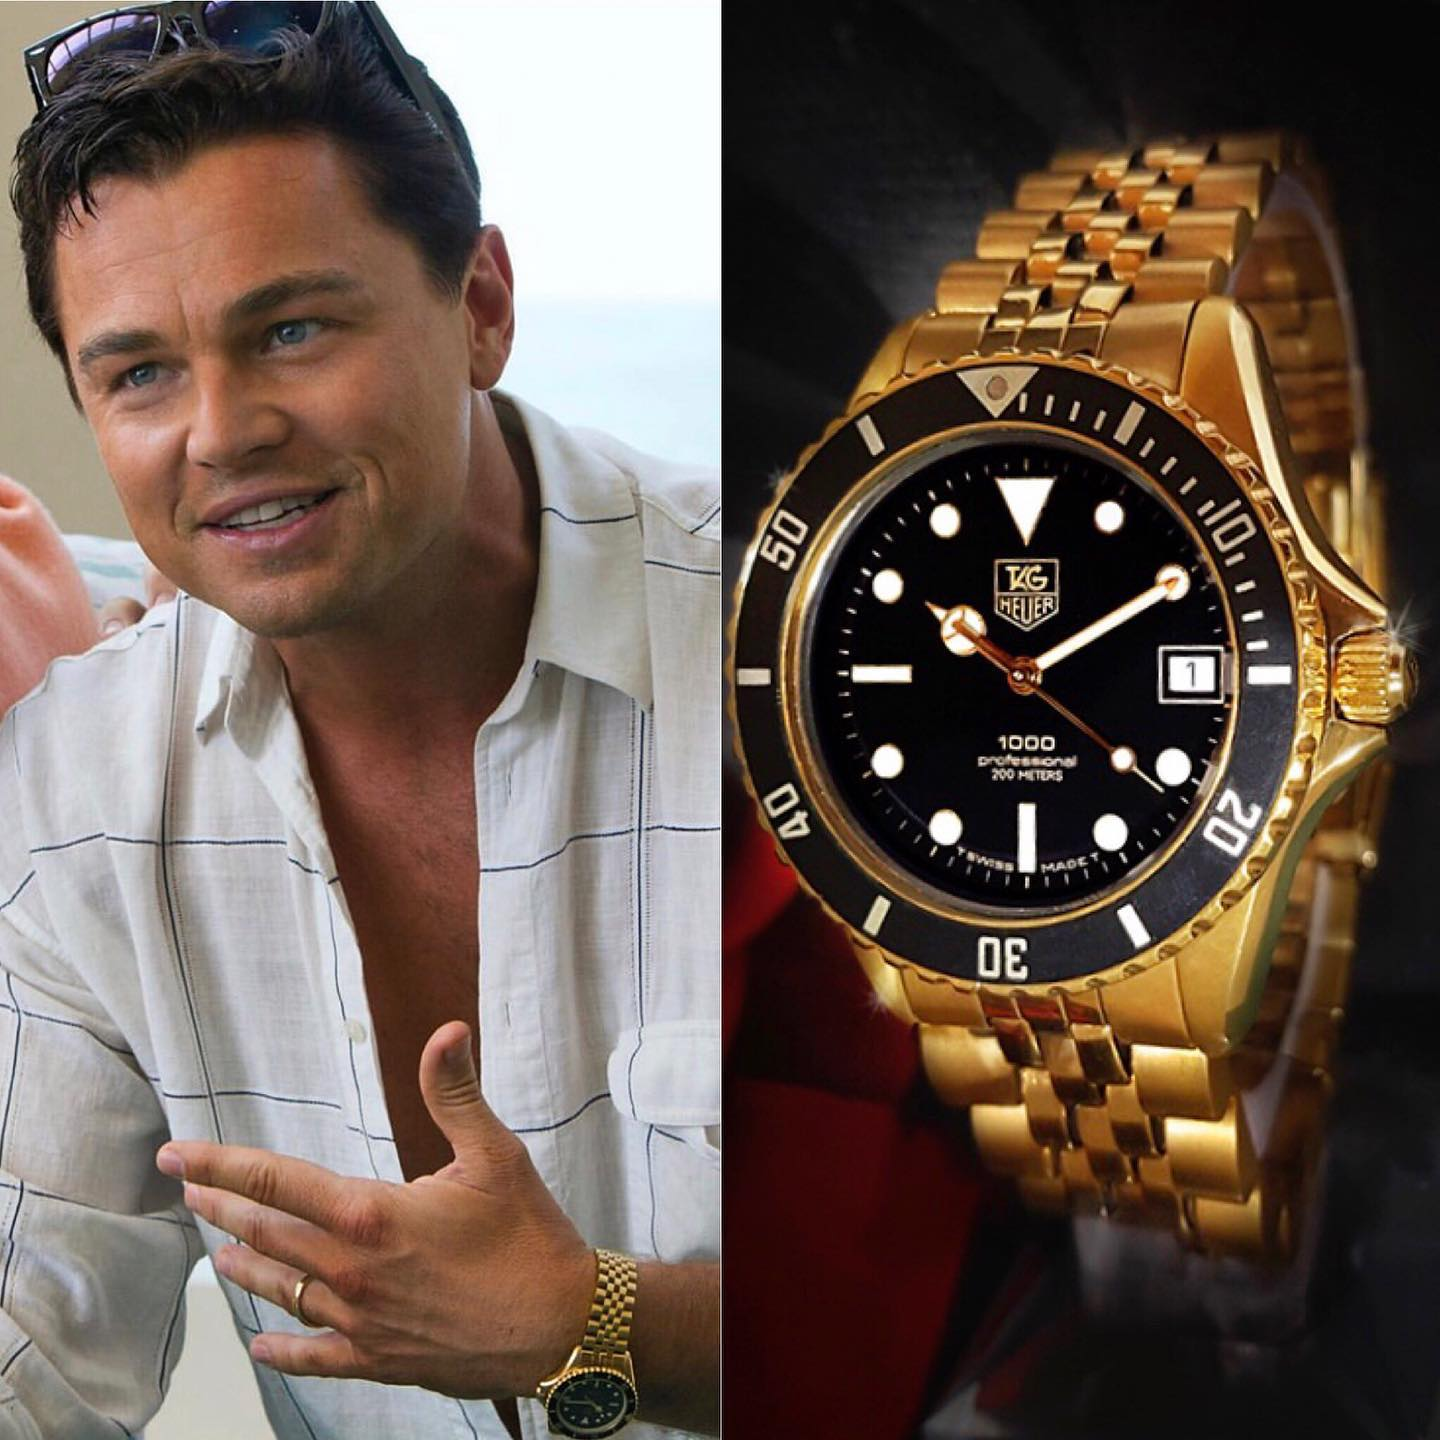 Jordan Belfort (@leonardodicaprio) rocking the 1000 Series 18K @tagheuer in the modern classic Wolf of Wall Street Many mistakenly believe that it's a GMT-Master, but it's not ️ 📸 @superwatchman